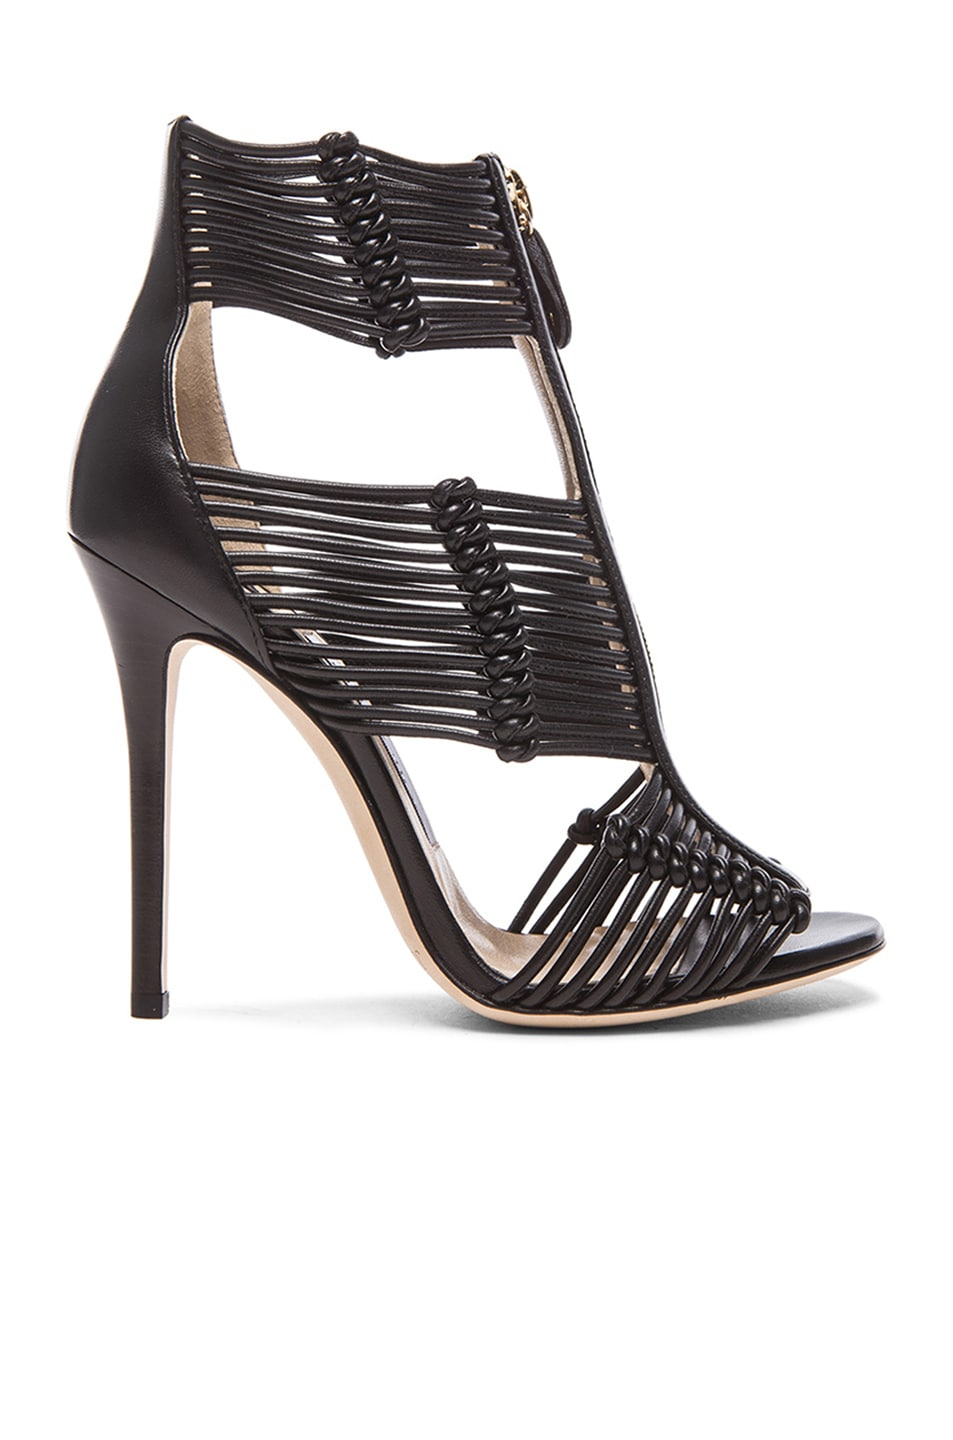 Image 1 of Jimmy Choo Kattie Leather Heels in Black